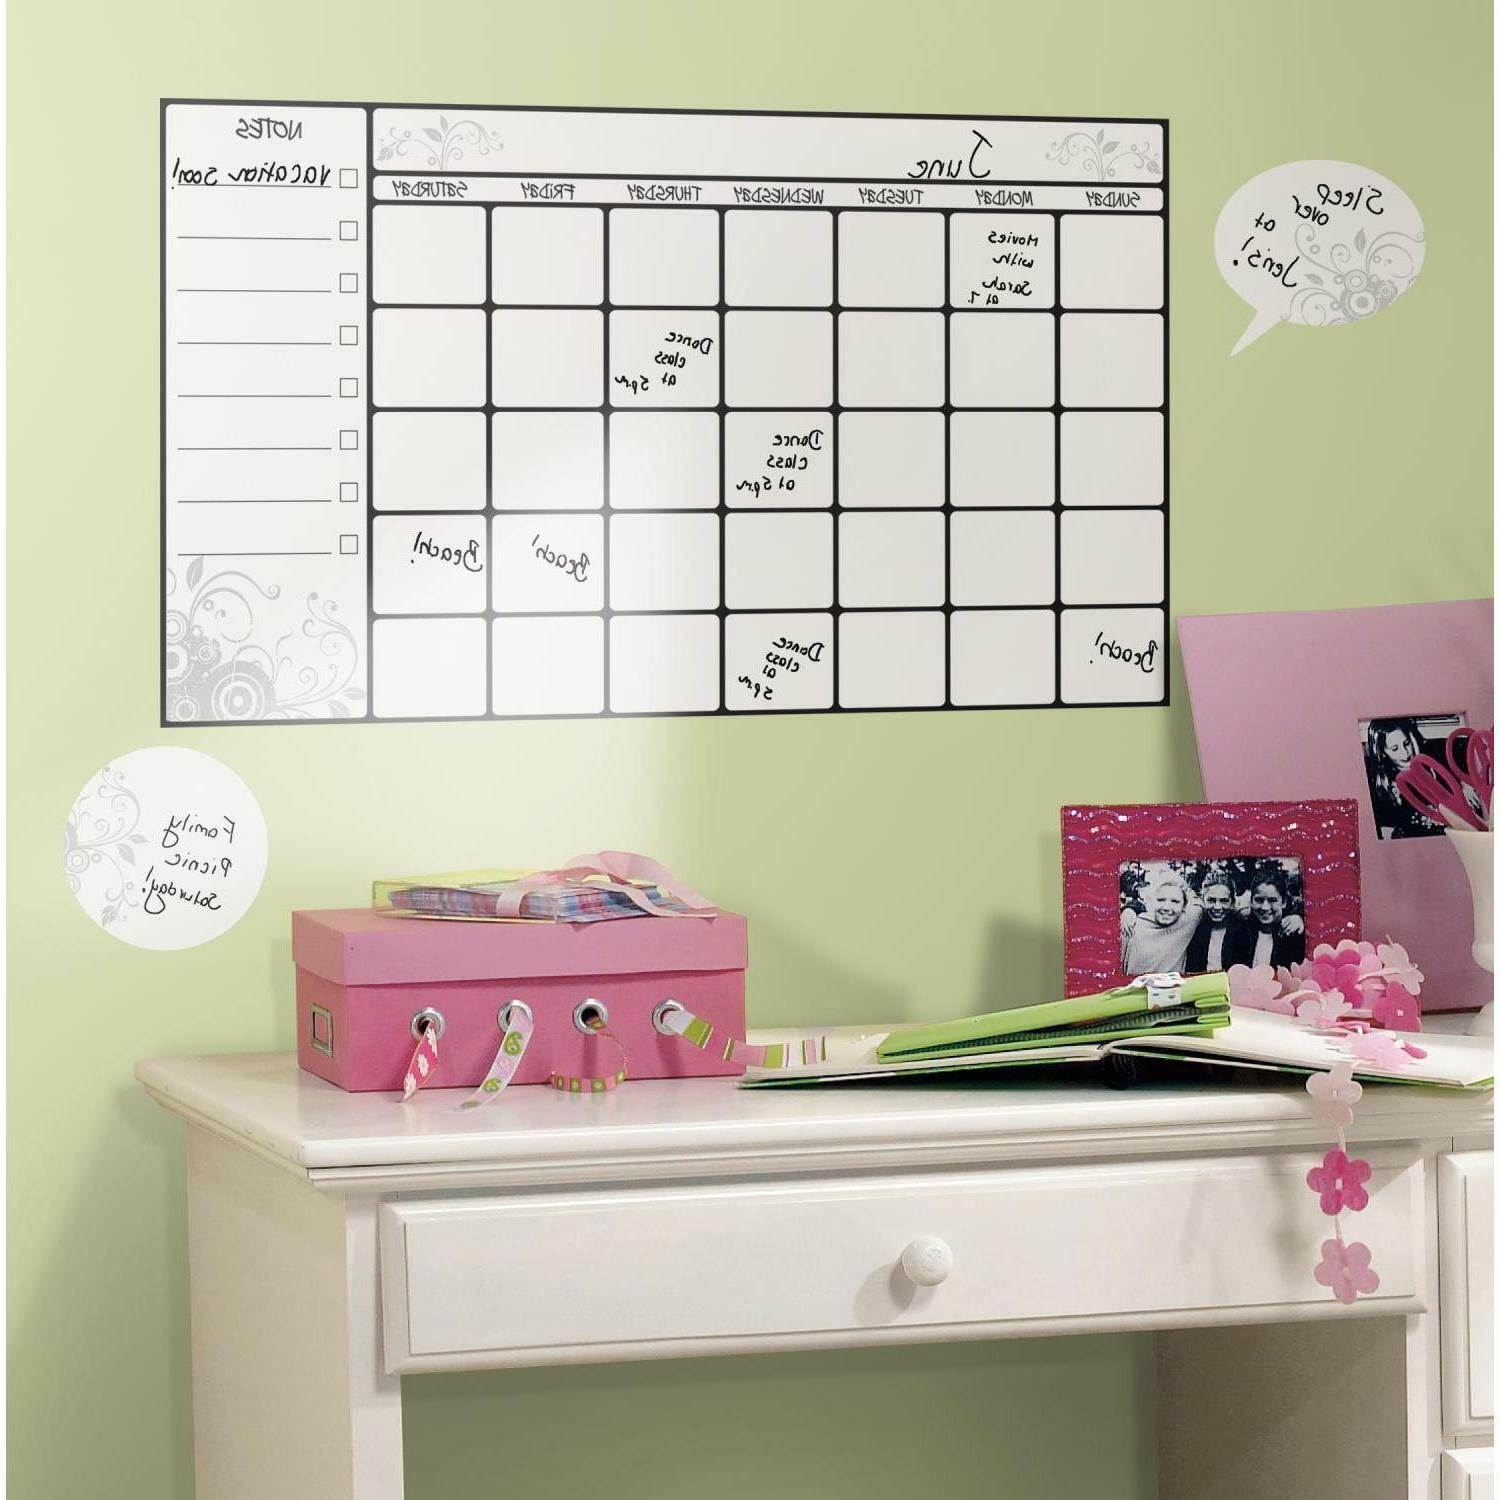 CALENDAR WALL 7 stick college decals